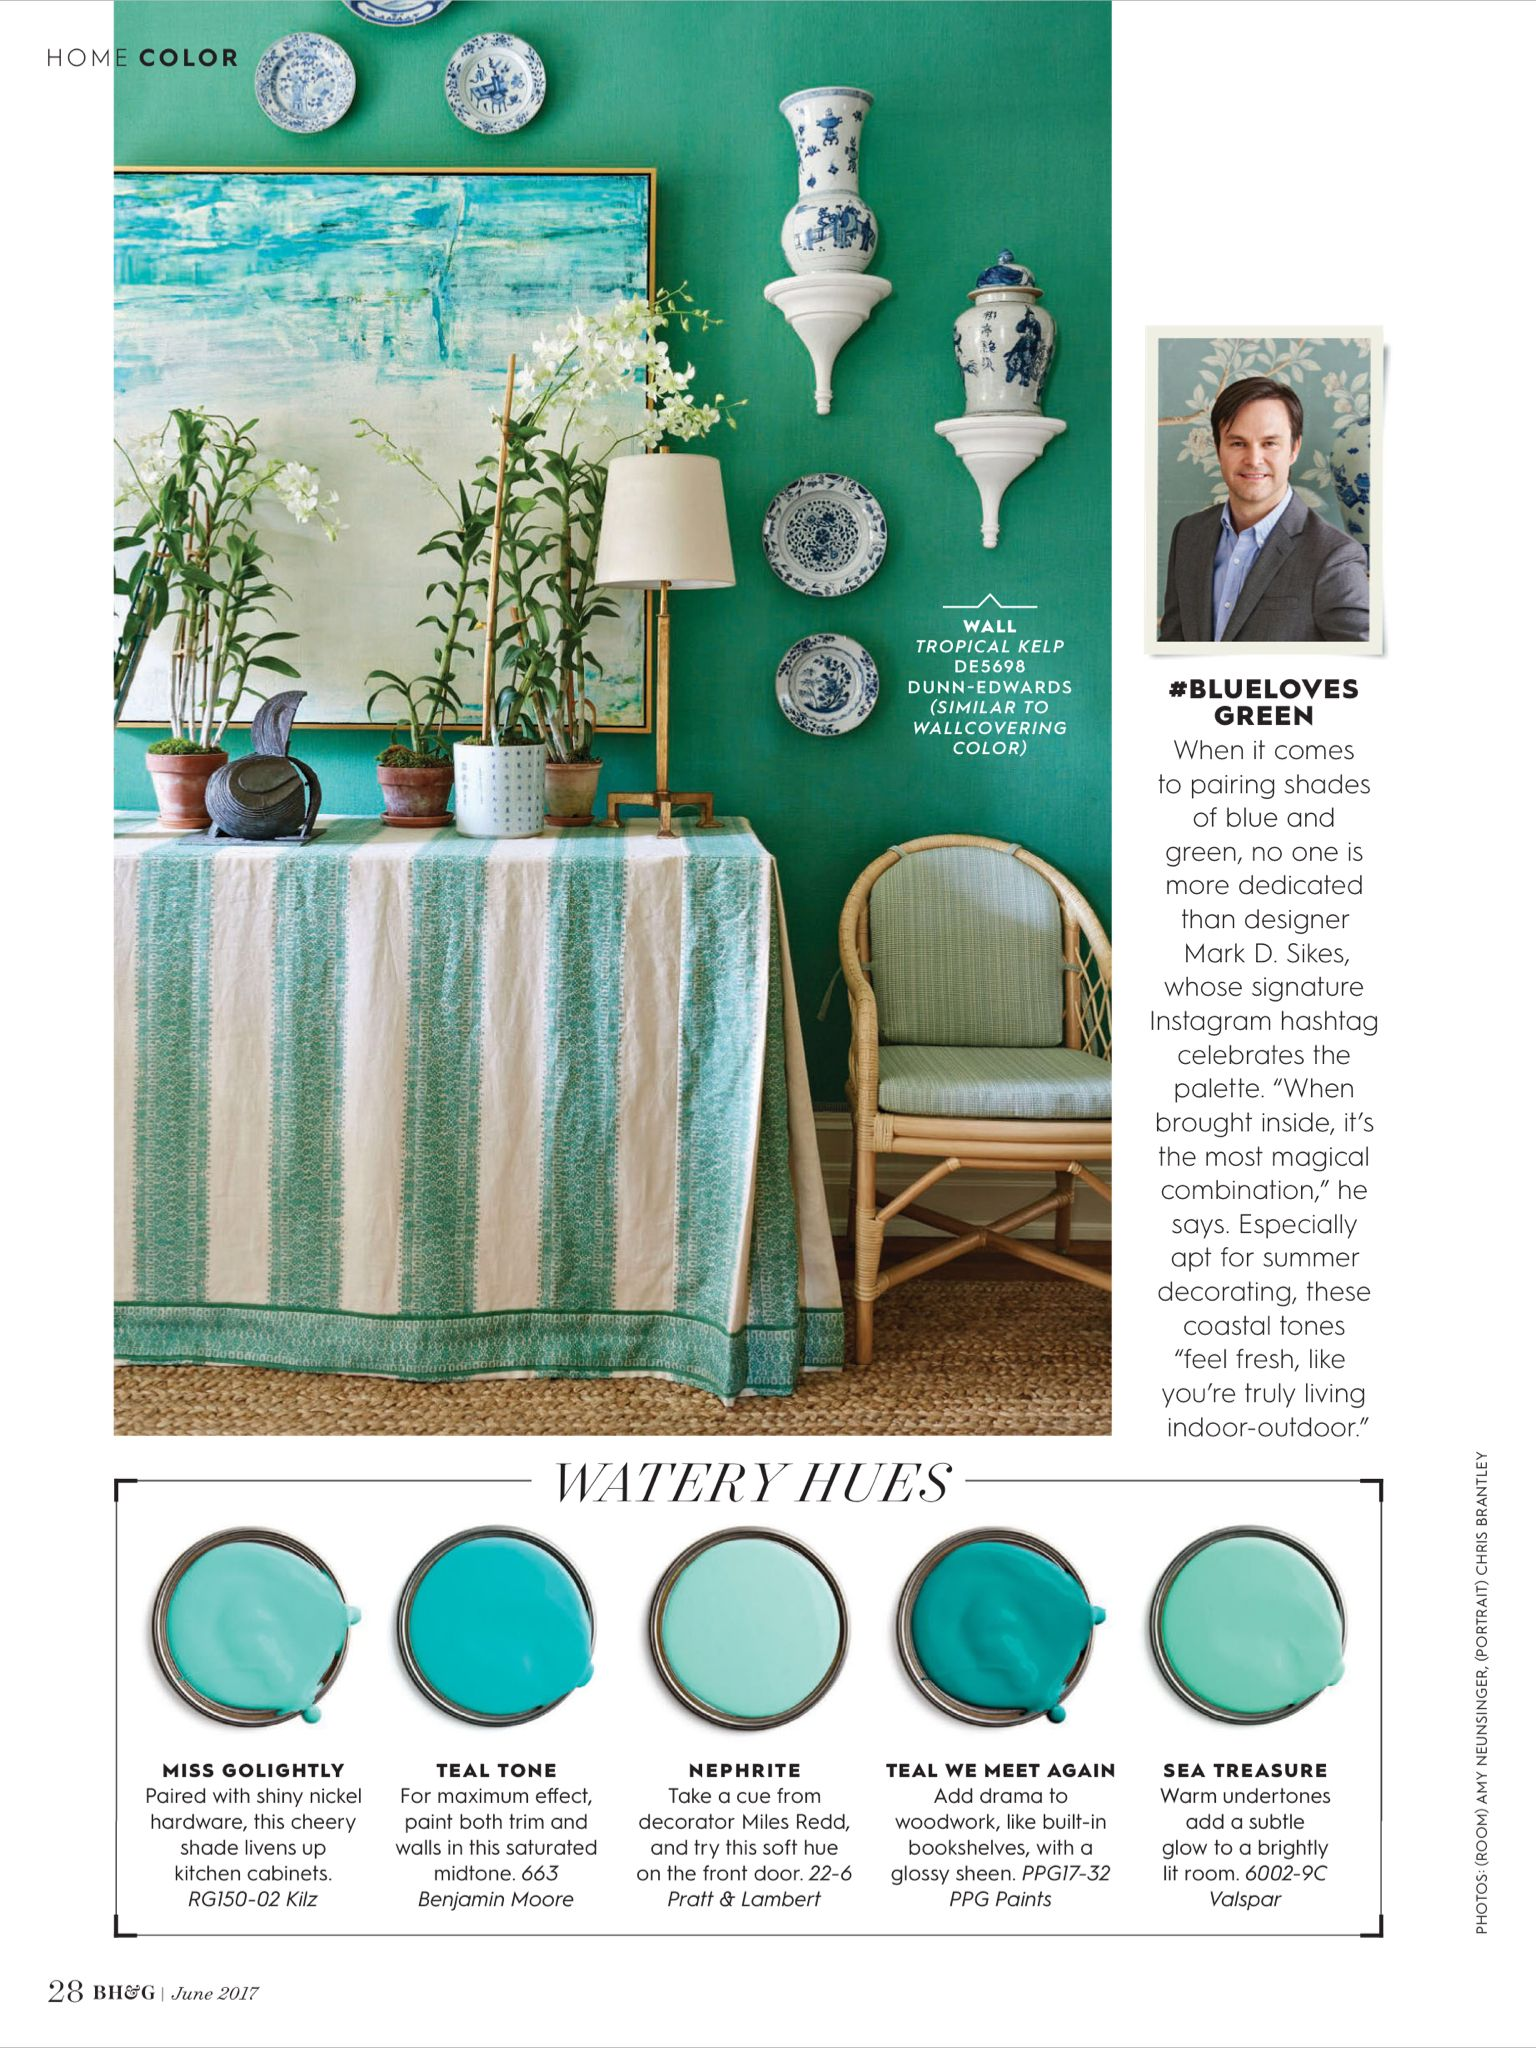 color sea shades from better homes and gardens june 2017 read it rh pinterest com